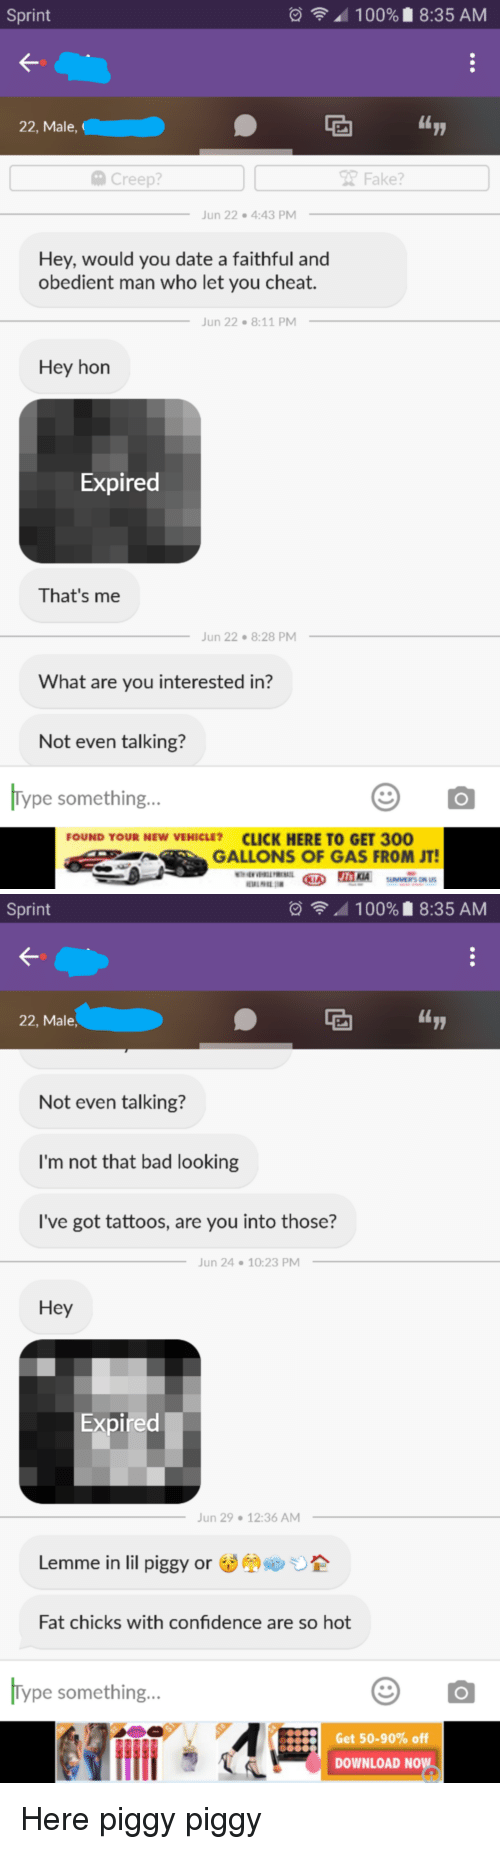 I'm not interested in dating you